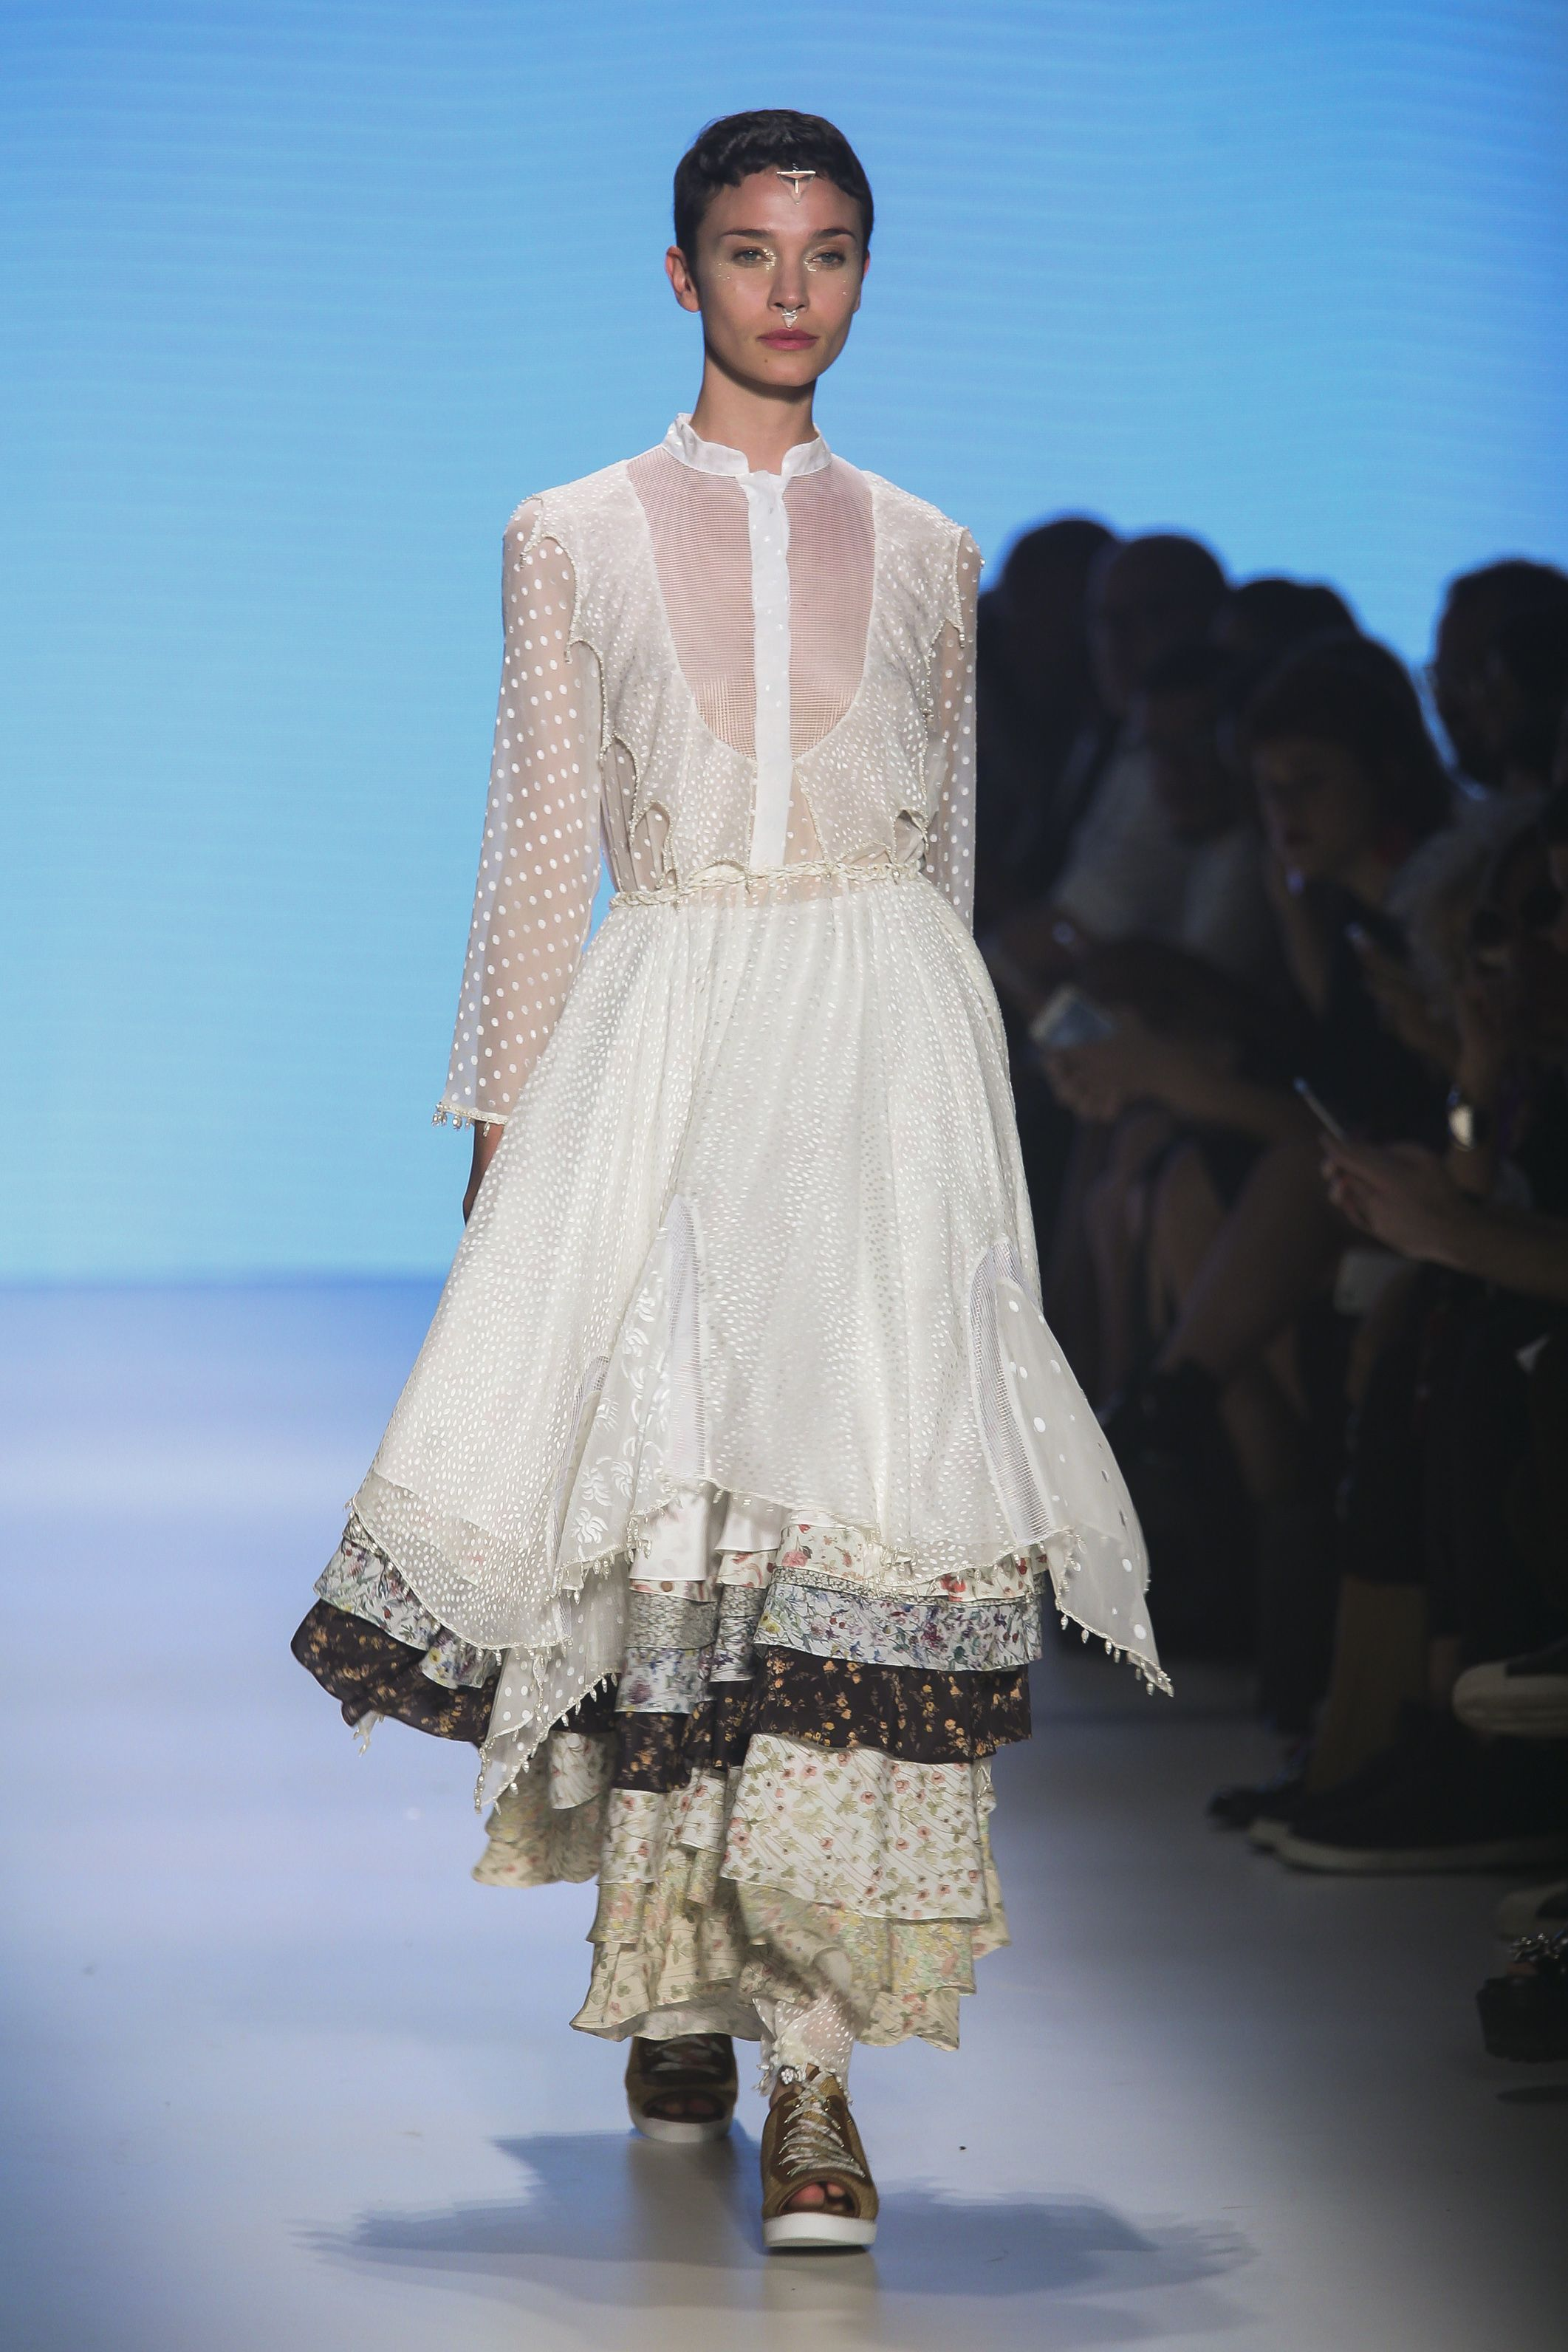 Just Skirts And Dresses Inspiration: Pin On 1900 -1910